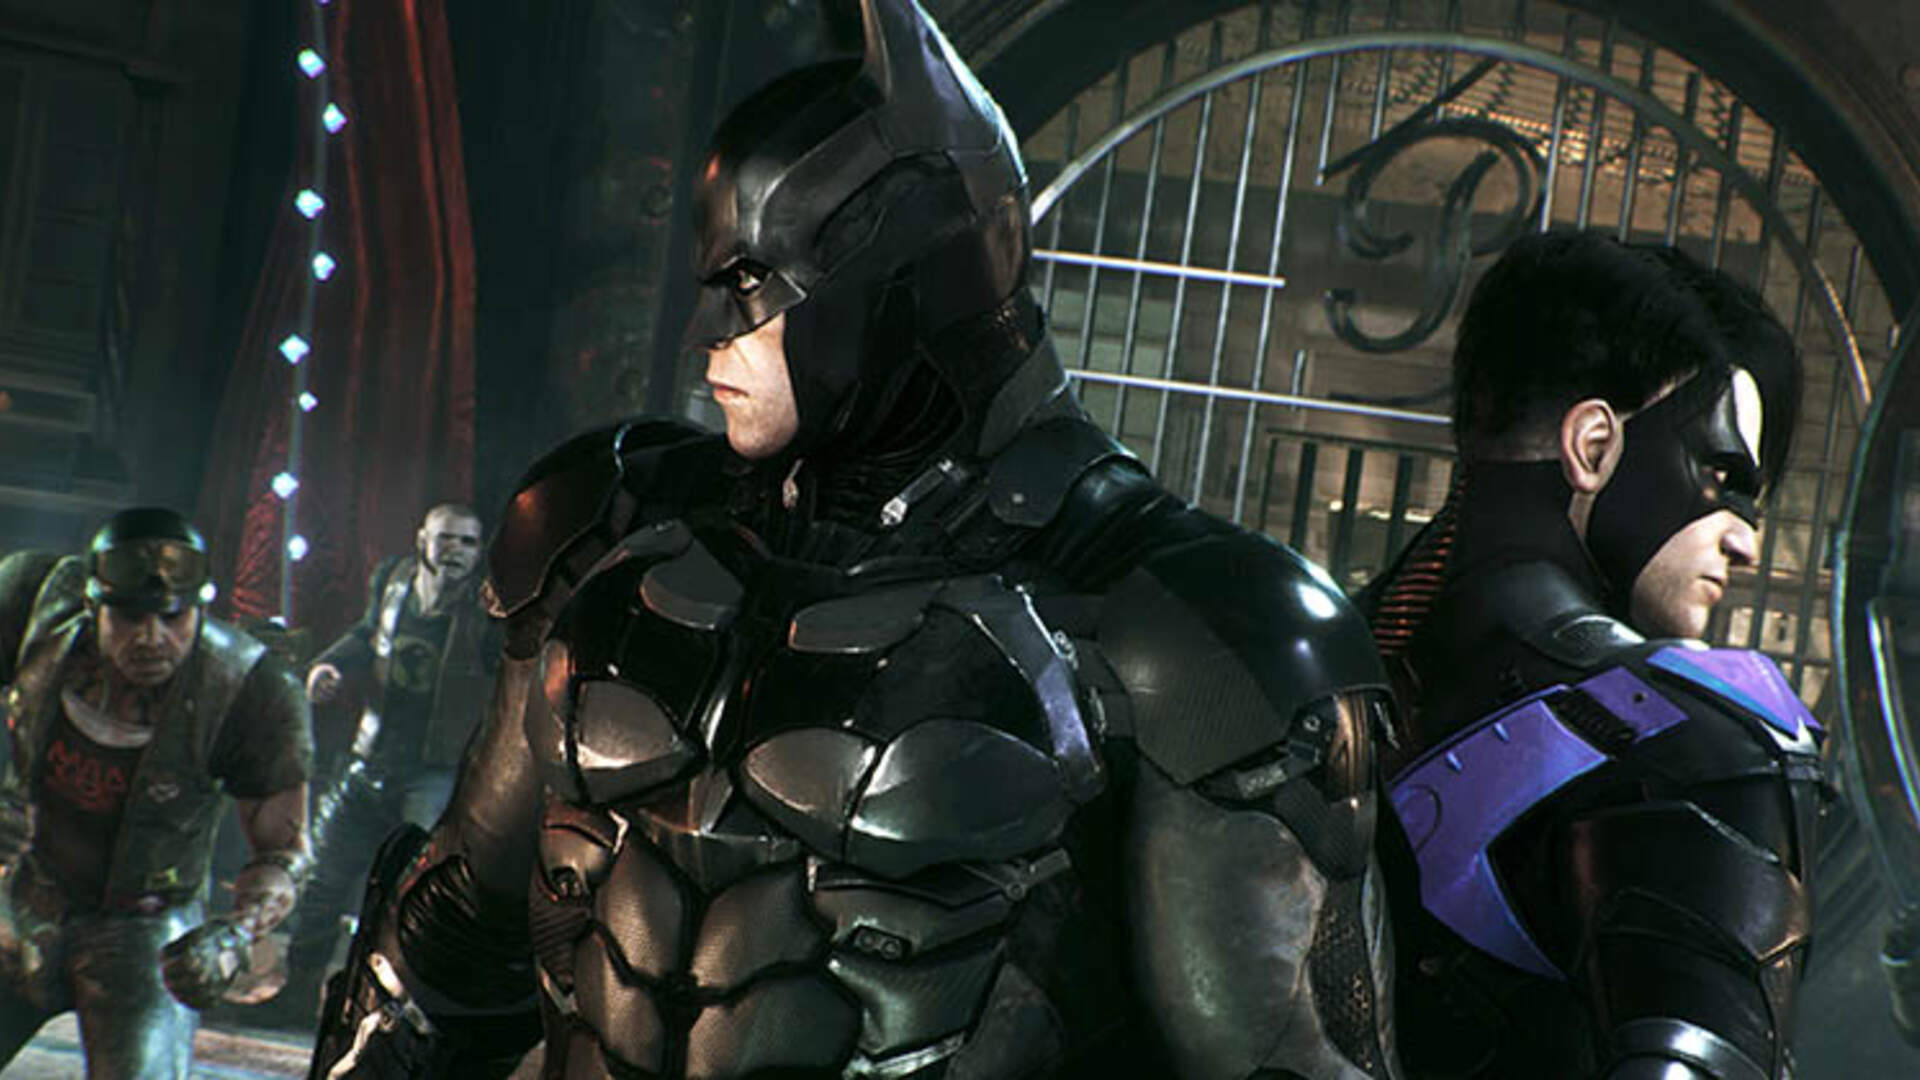 Batman Fights the Cowardly Superstition That Less is More in Arkham Knight